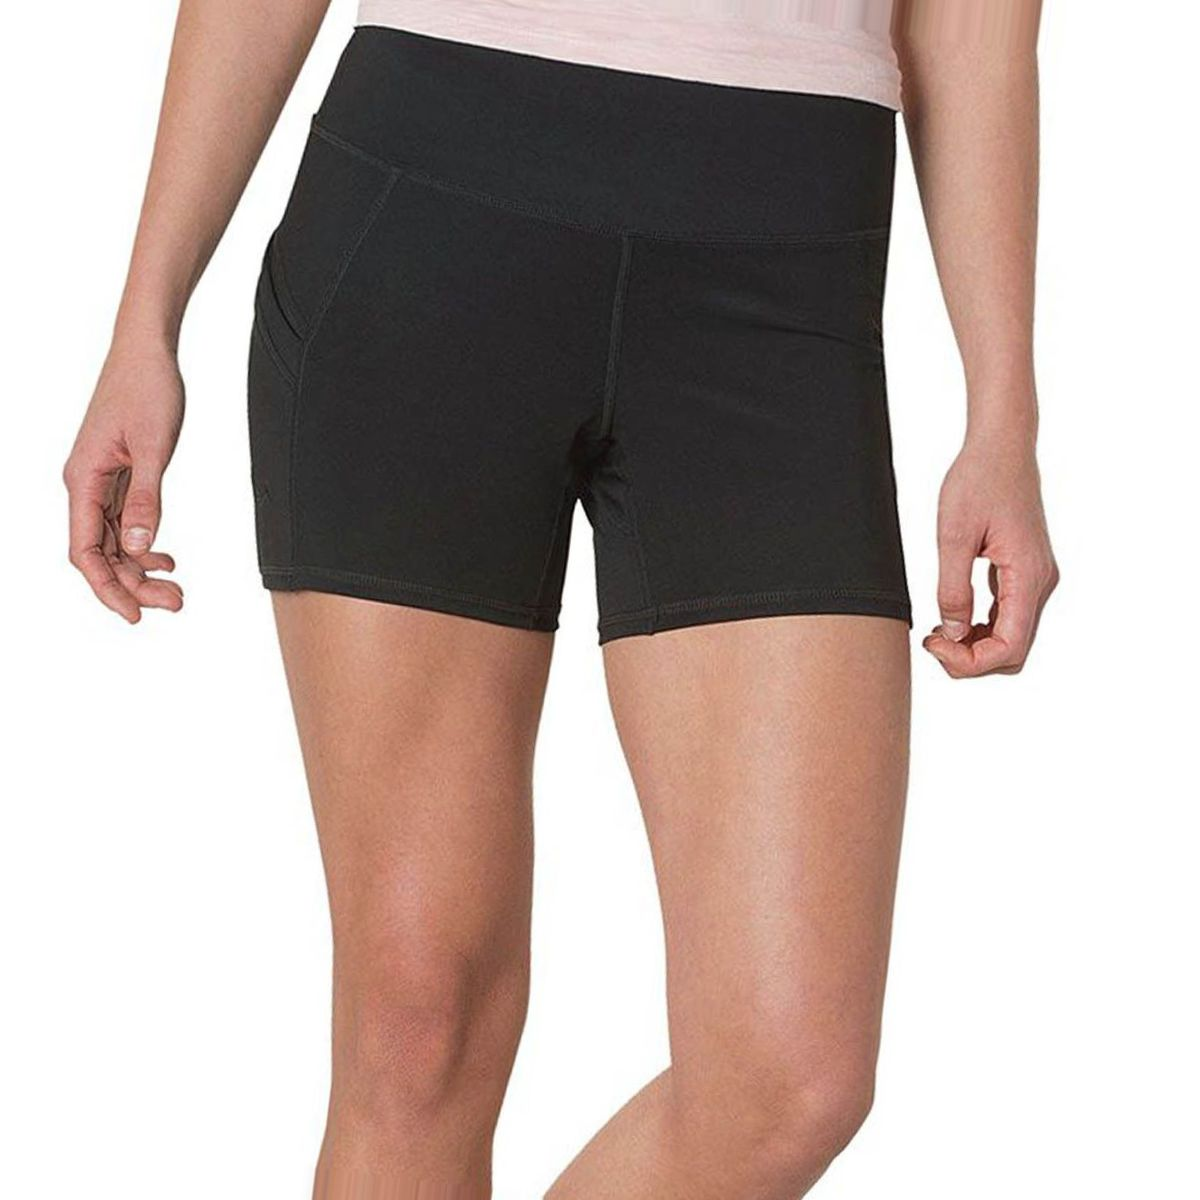 KUHL Skulpt Short 4.5 - Women's